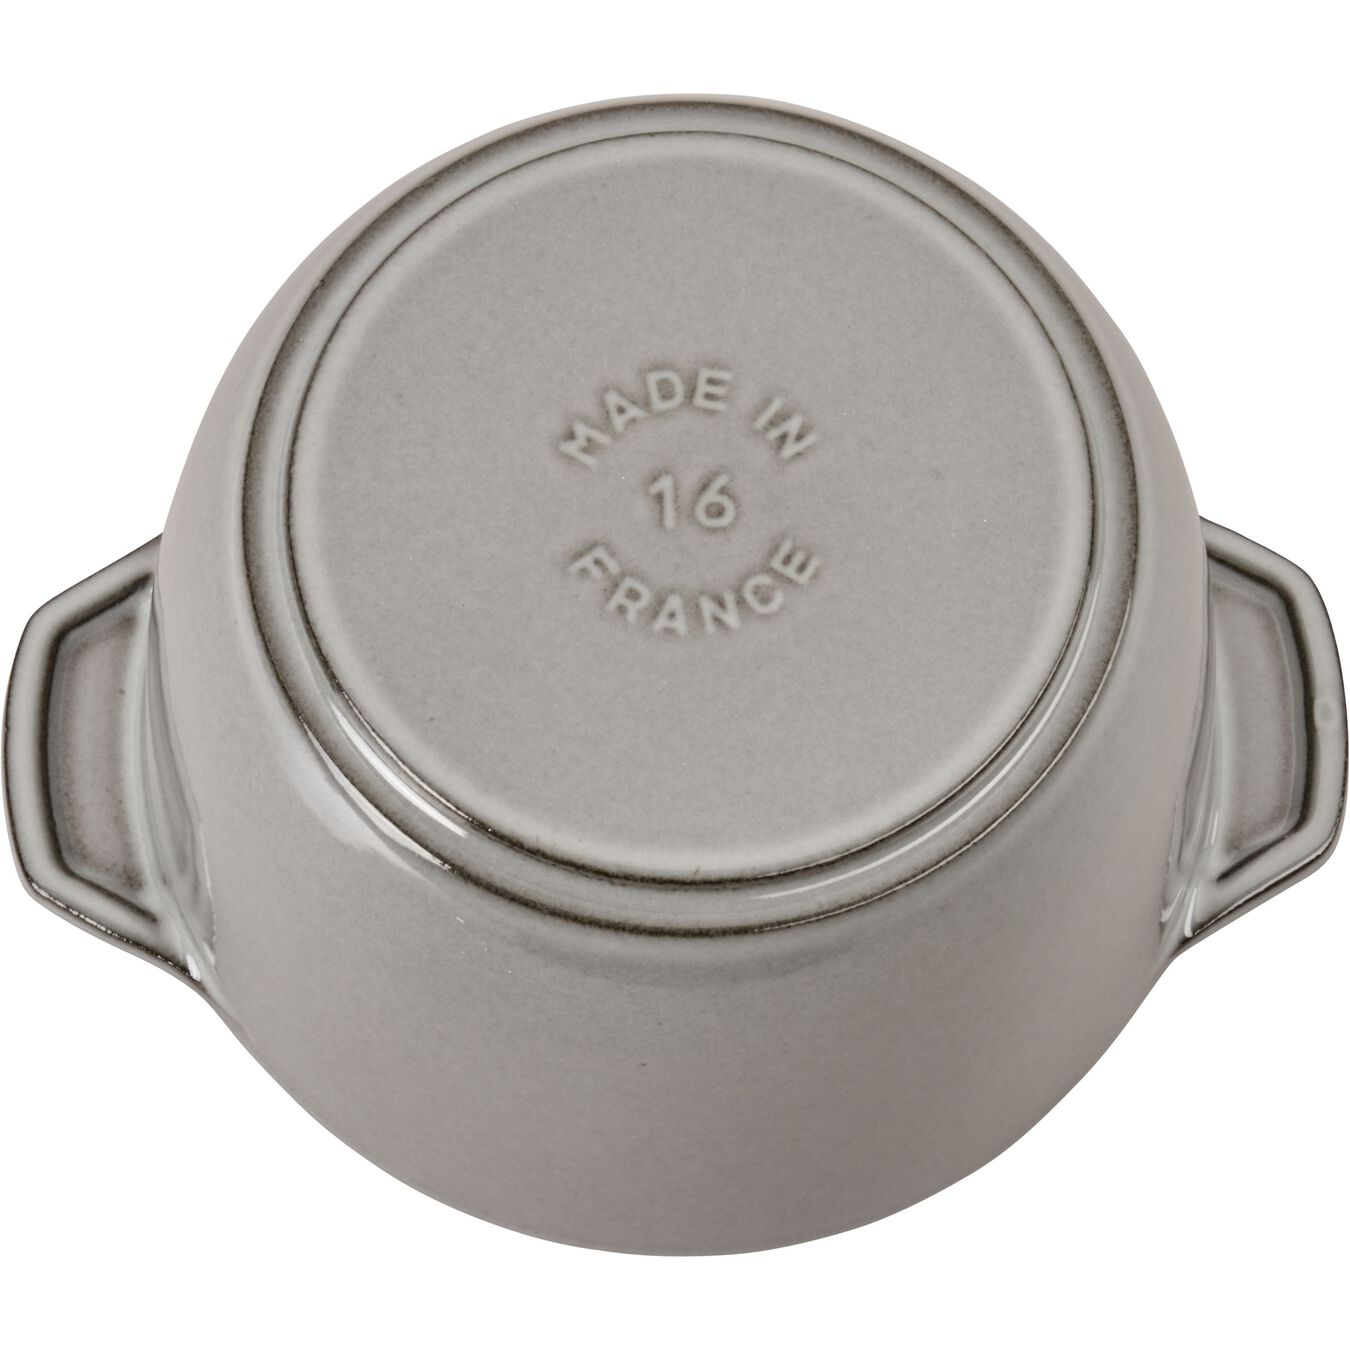 1.5 l round Rice Cocotte, graphite-grey,,large 9